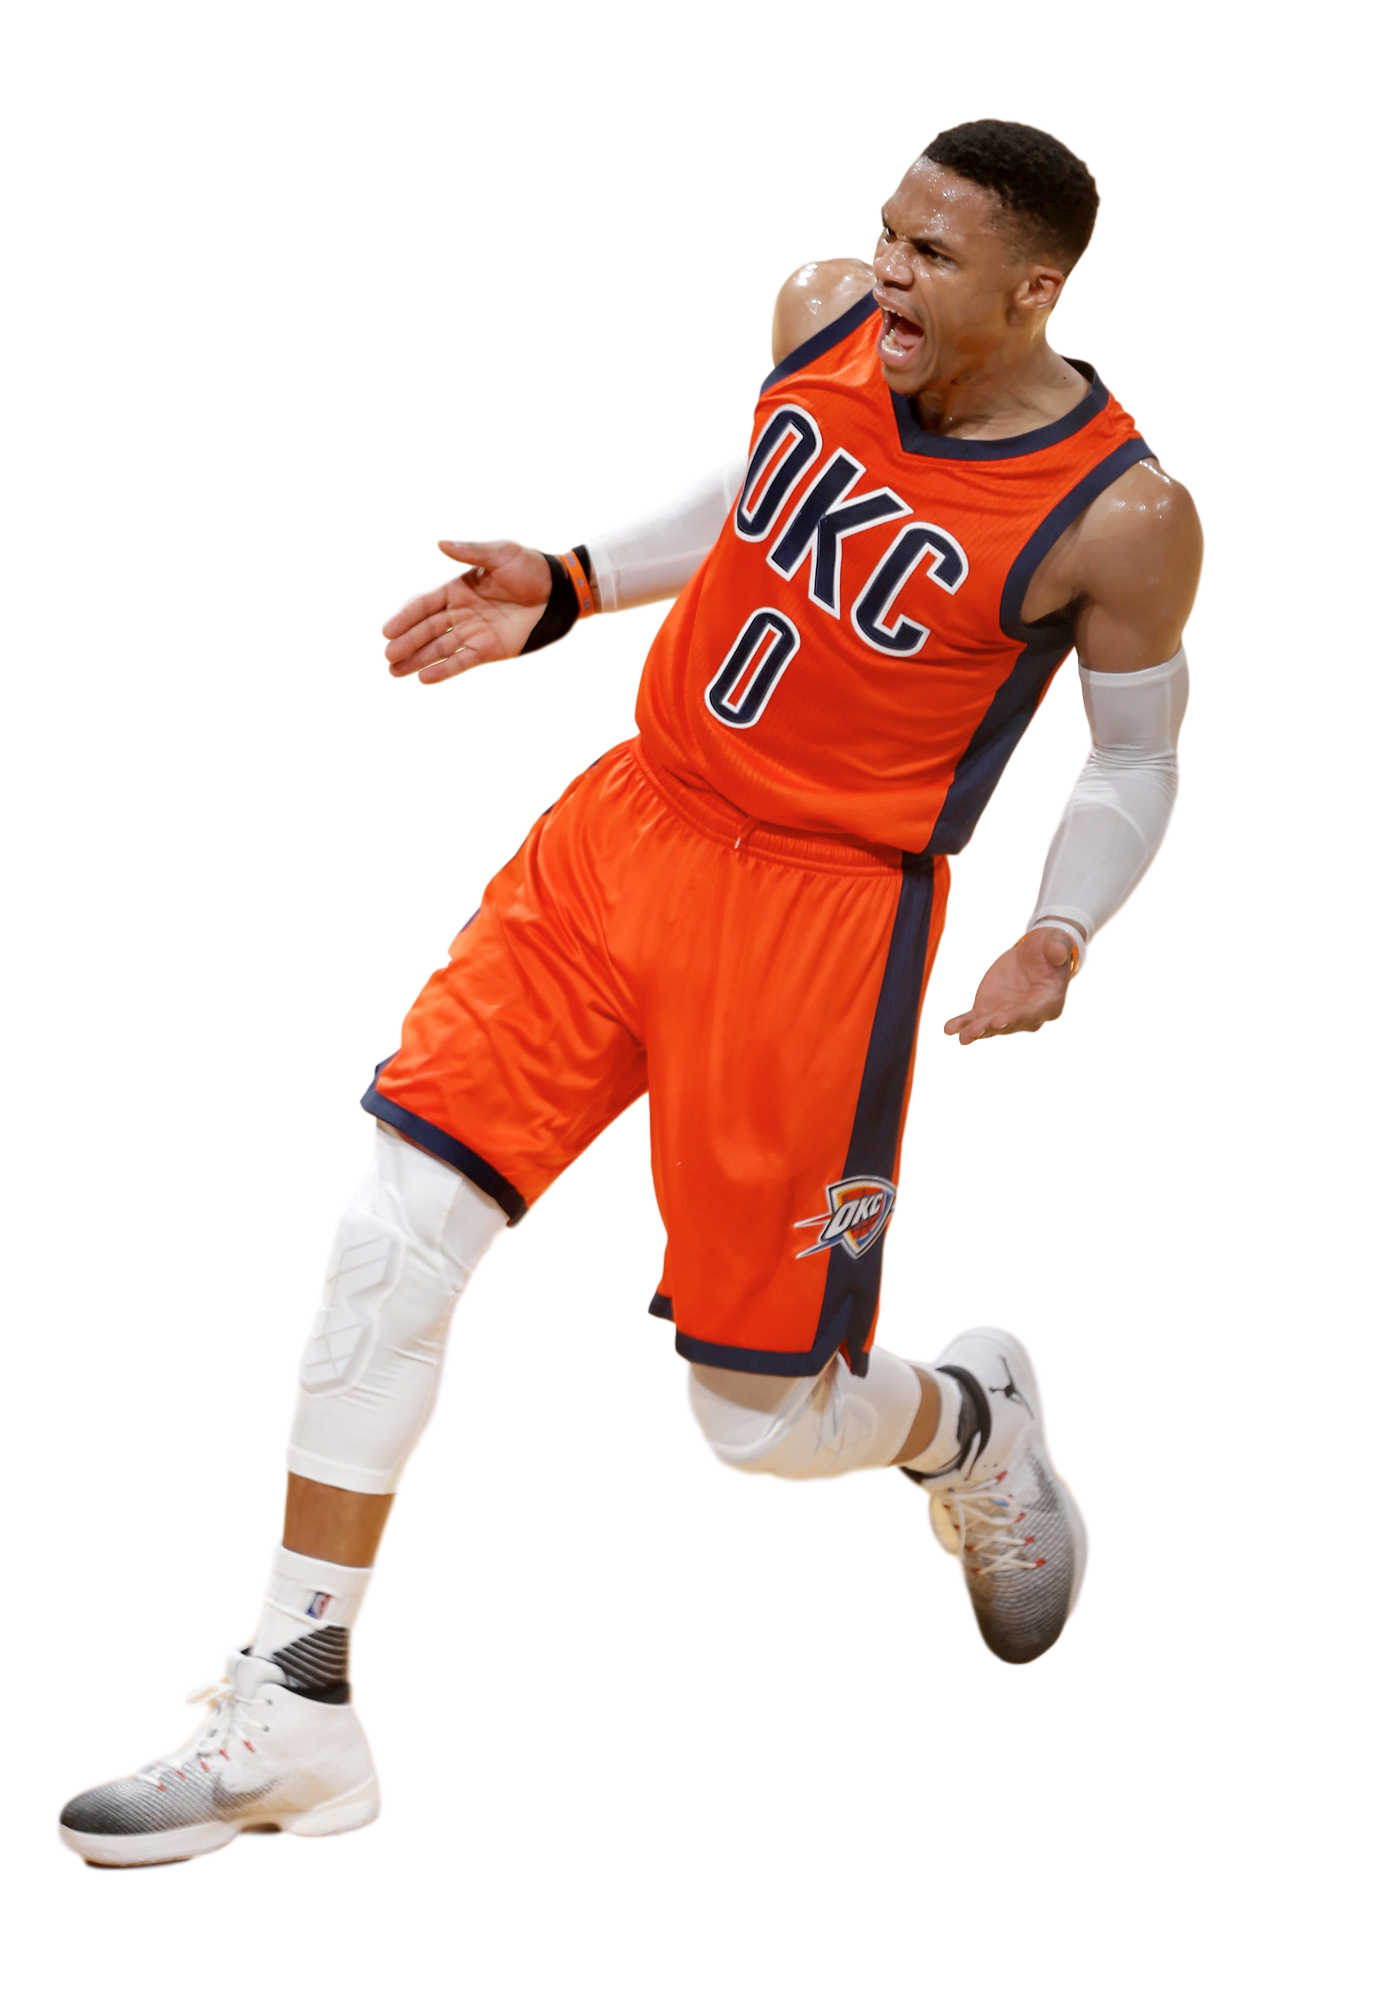 Russell Westbrook Png Hd - Russell Westbrook Face Png #505214 - PNG Images - PNGio